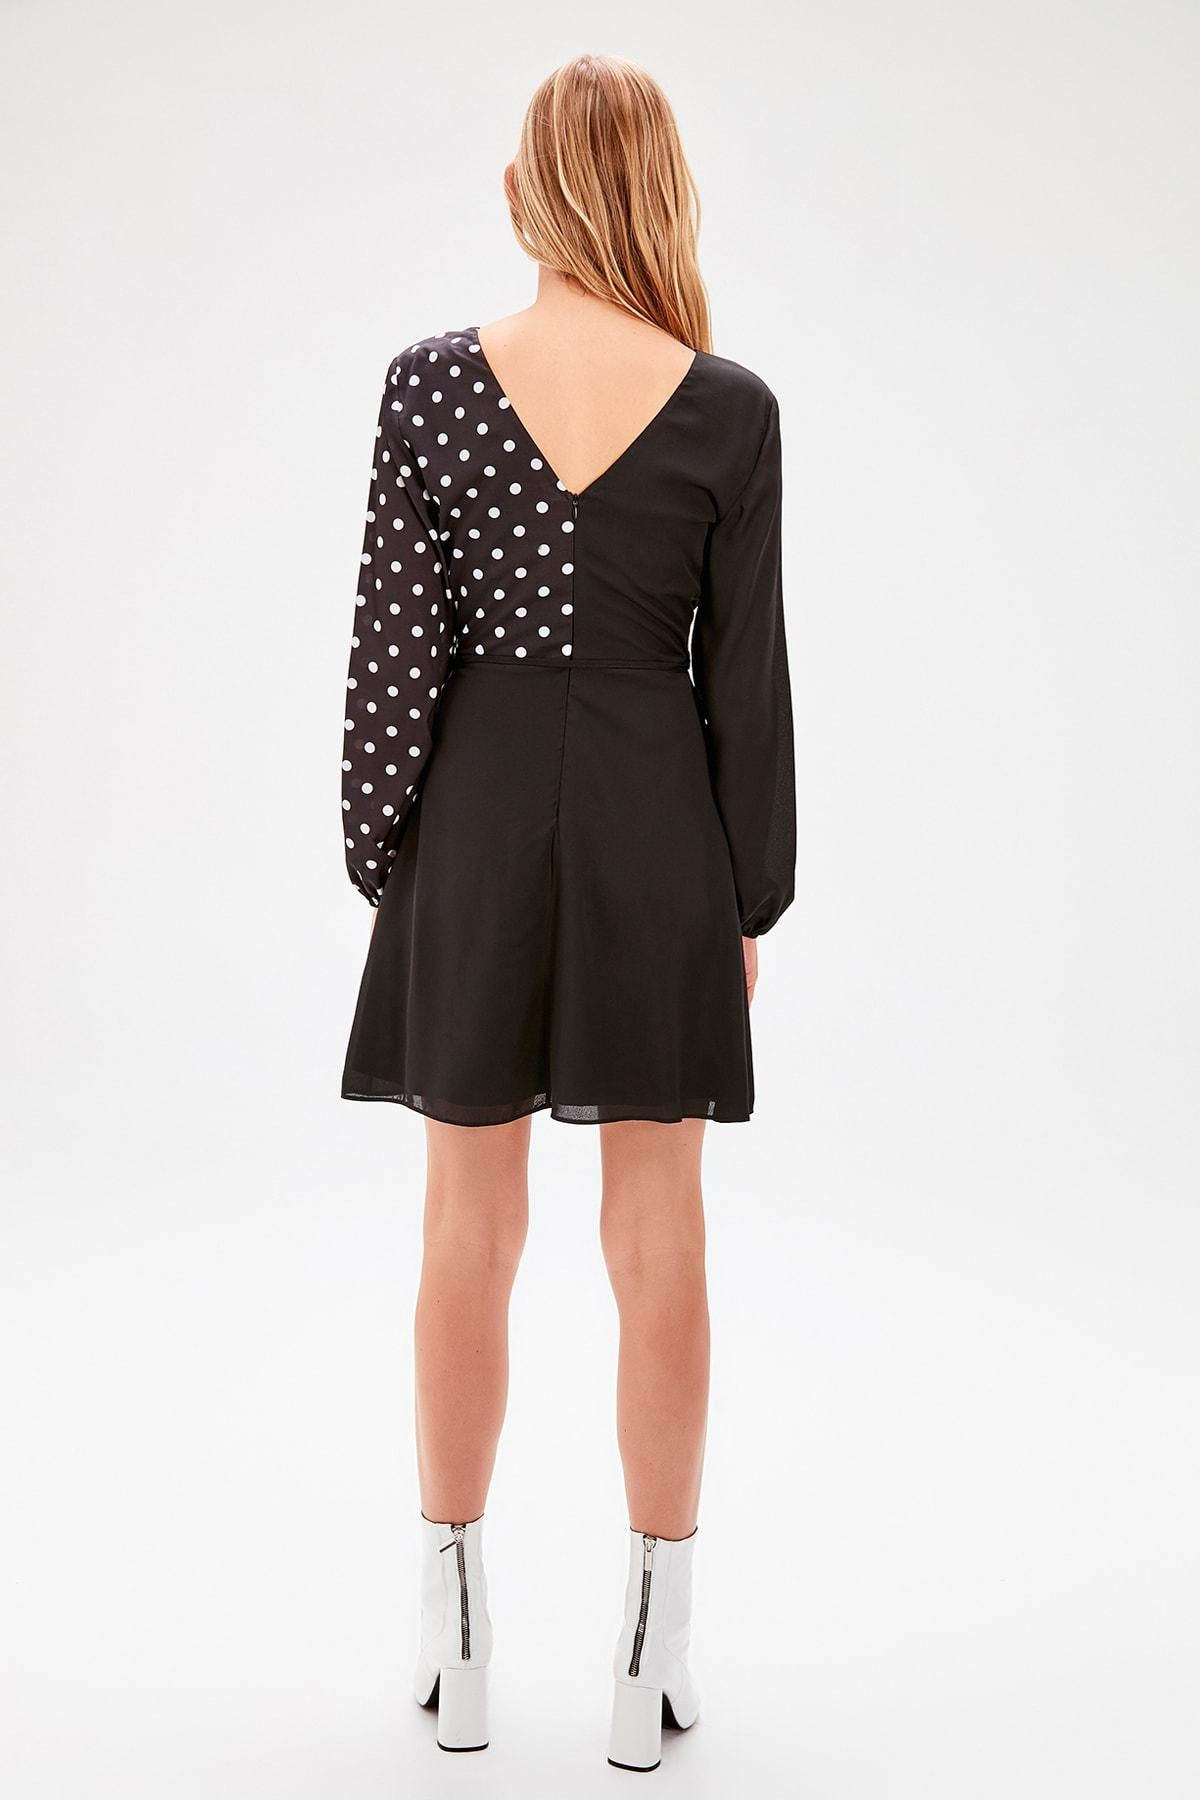 Black Polka Dot Dress - emuuz.com